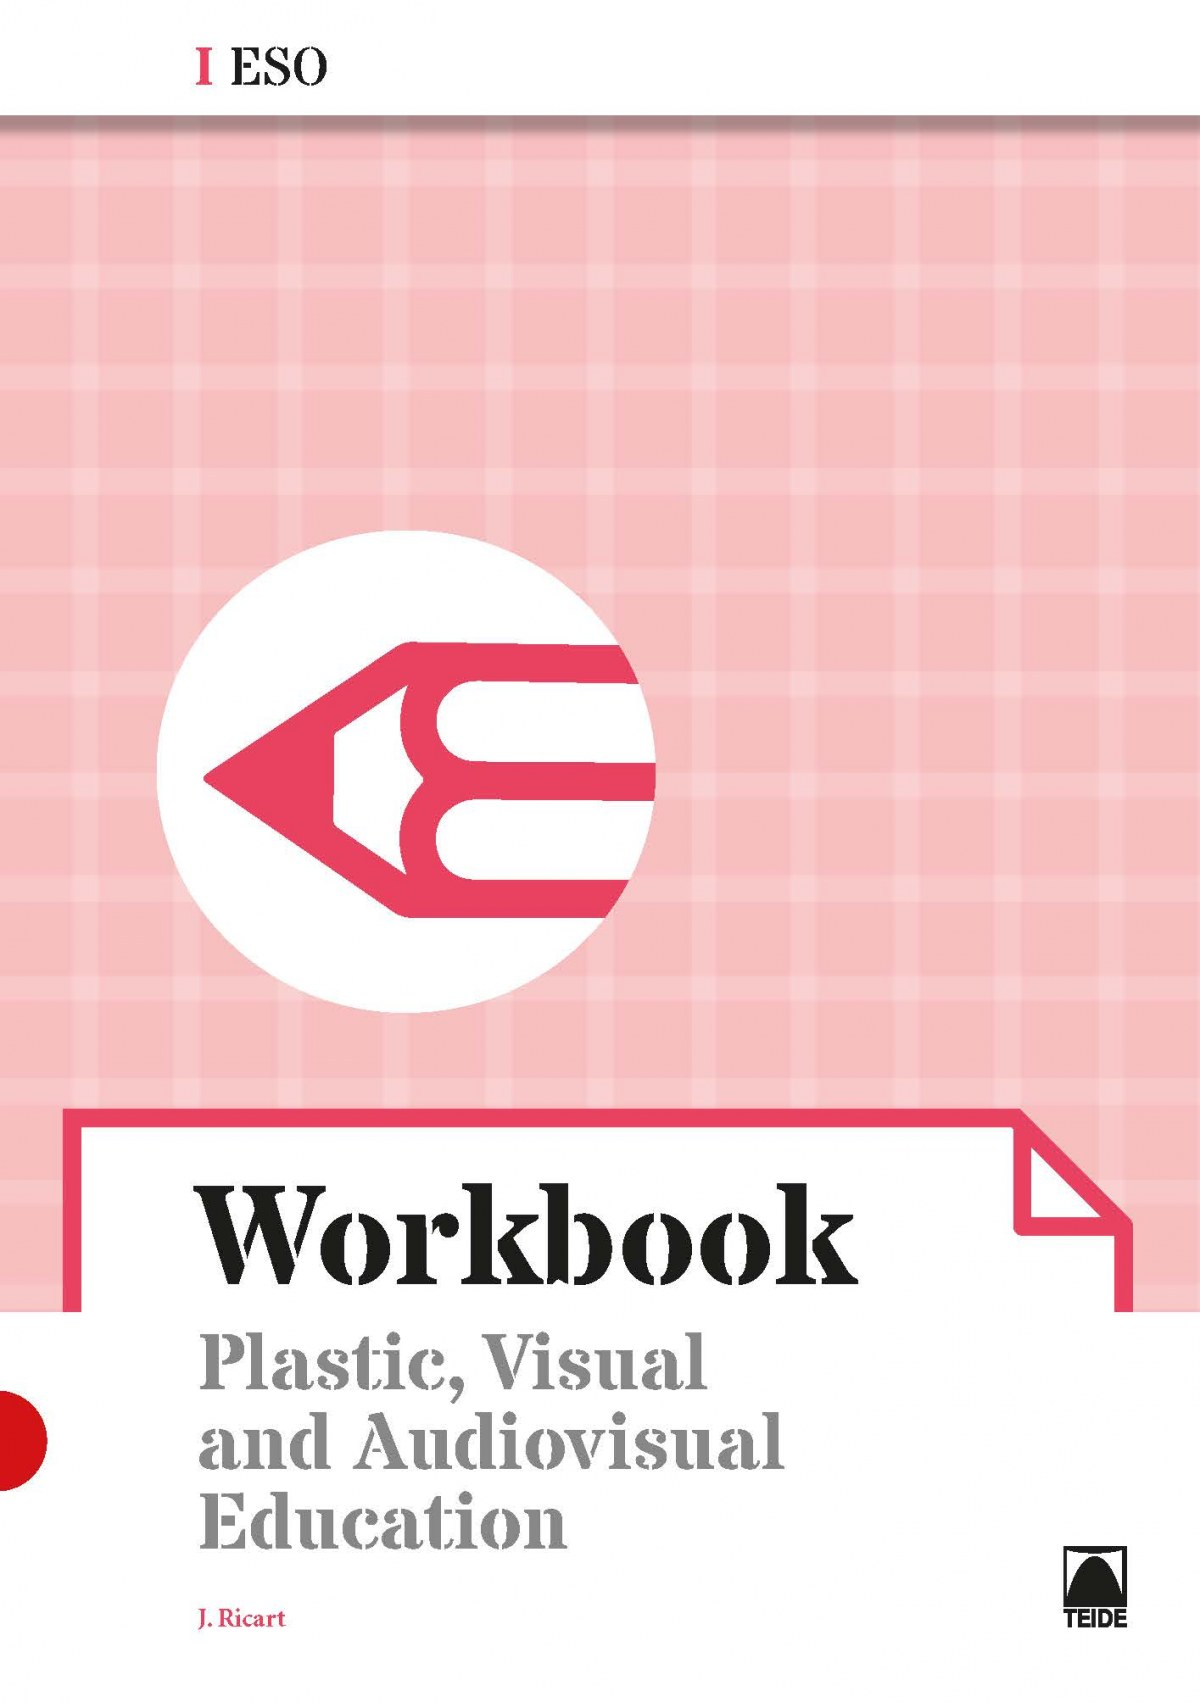 PLASTIC, VISUAL AND AUDIOVISUAL I. WORKBOOK 2019